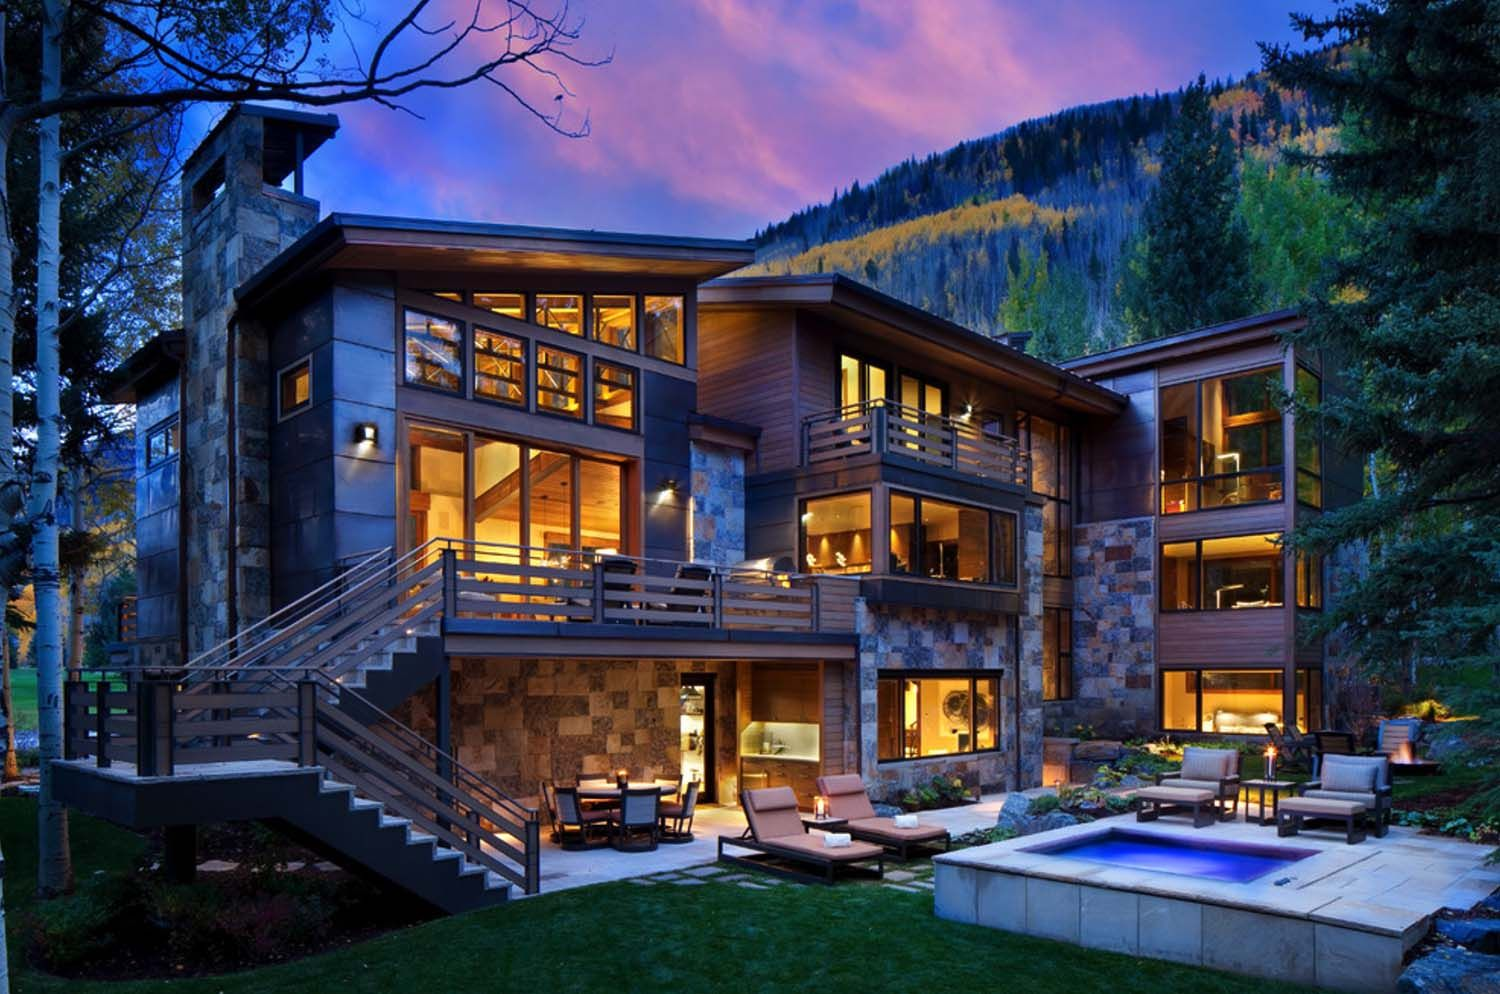 Captivating Modern-rustic Home In Colorado Mountains